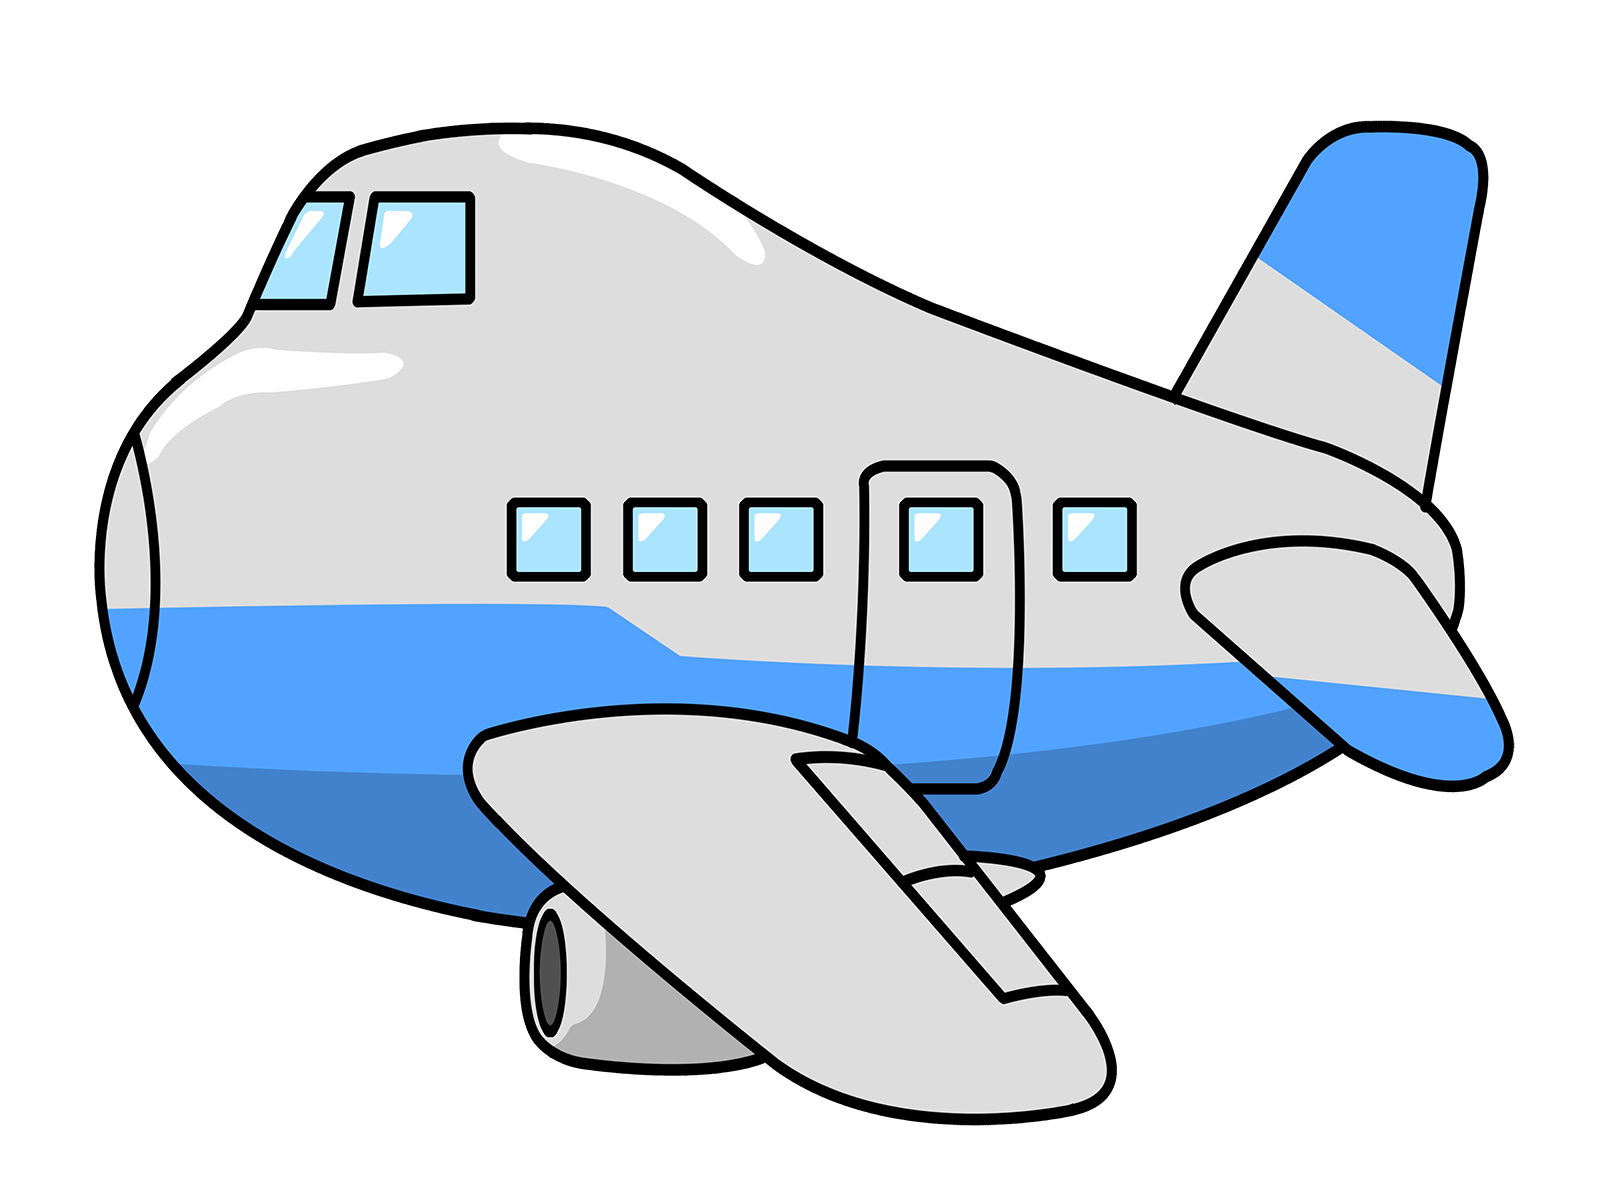 Free airplane cliparts download. Clipart plane